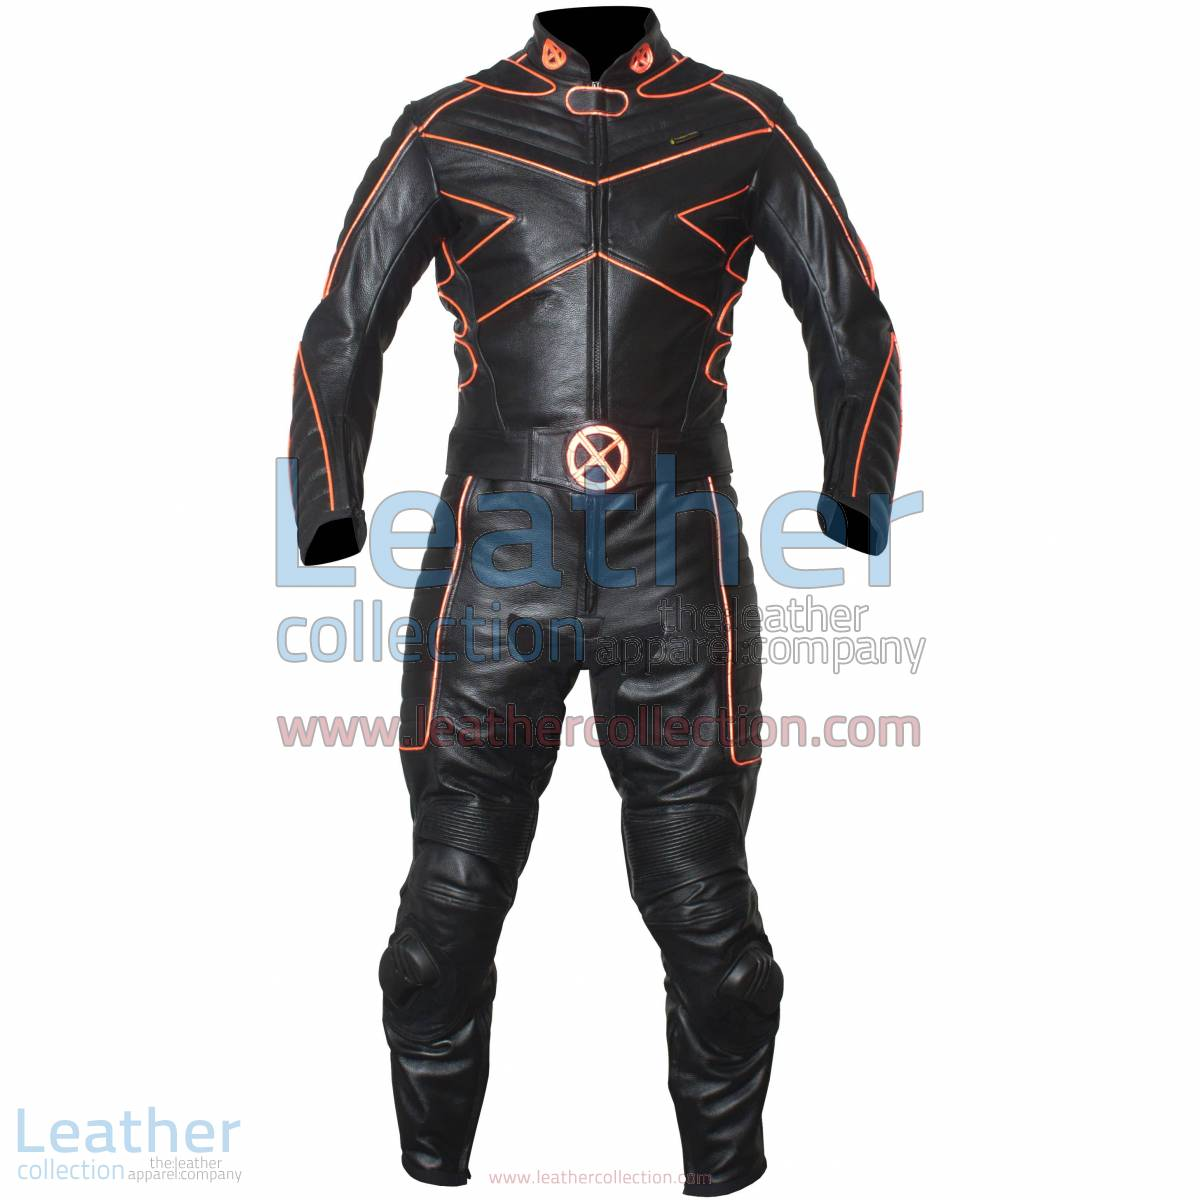 X-MEN Motorcycle Racing Leather Suit with Orange Piping | X-MEN suit